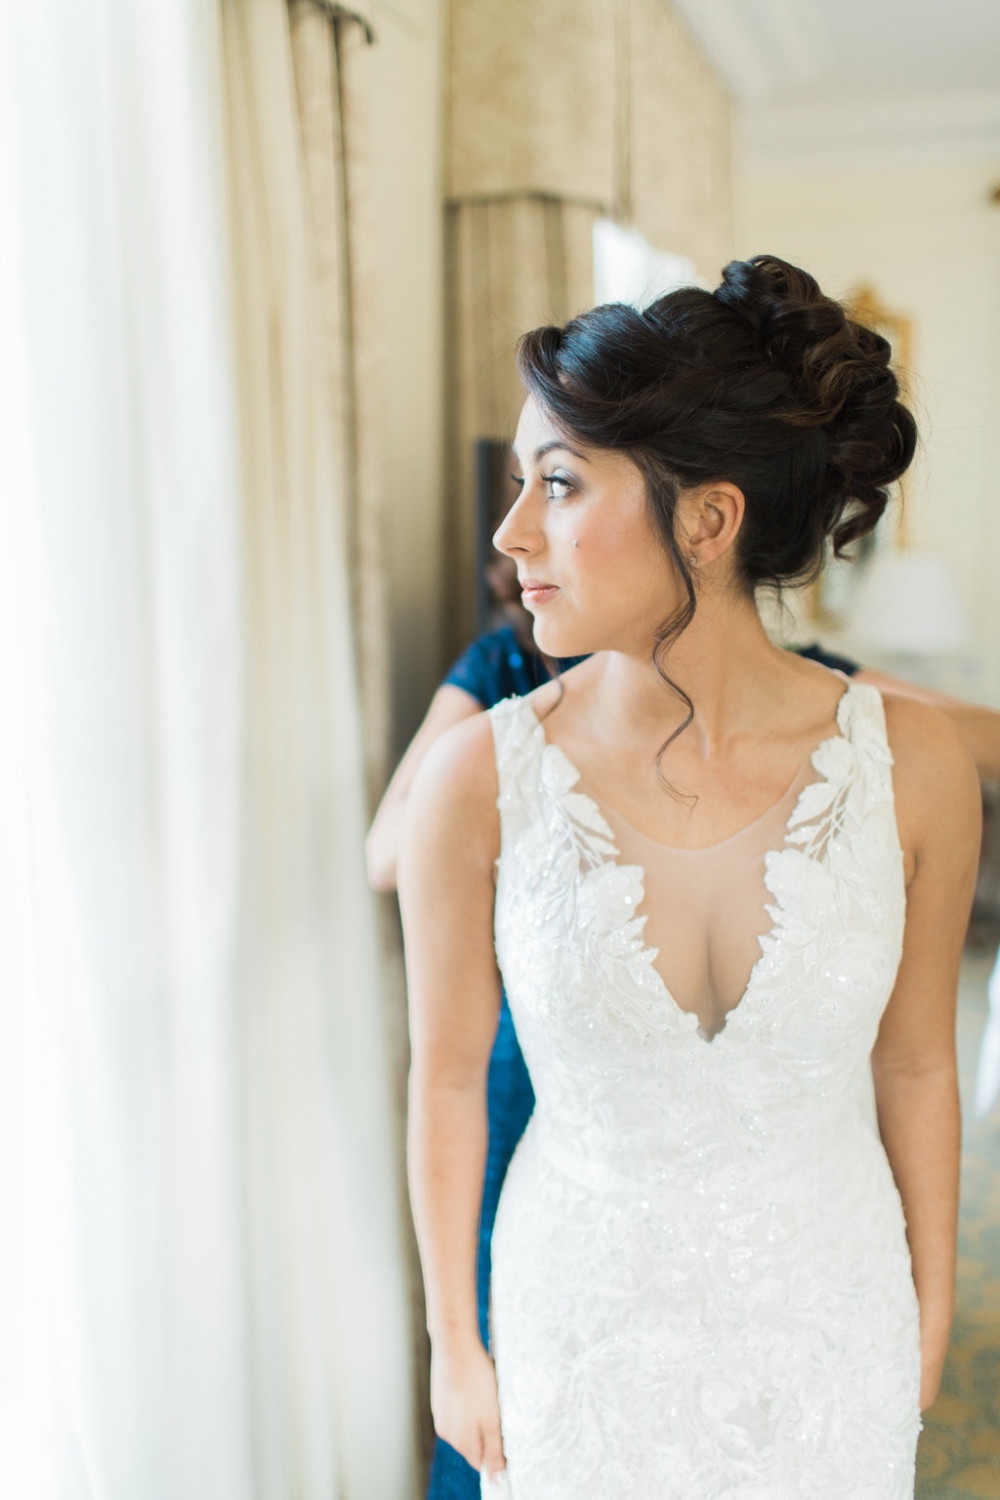 Dewy understate glam makeup, with just as glamourous hair. - Make Me Bridal Artist: Story Hair and Makeup. Photography by: Jacob and Pauline. #glamorous #curls #bridalmakeup #glow #bridalhair #updo #elegant